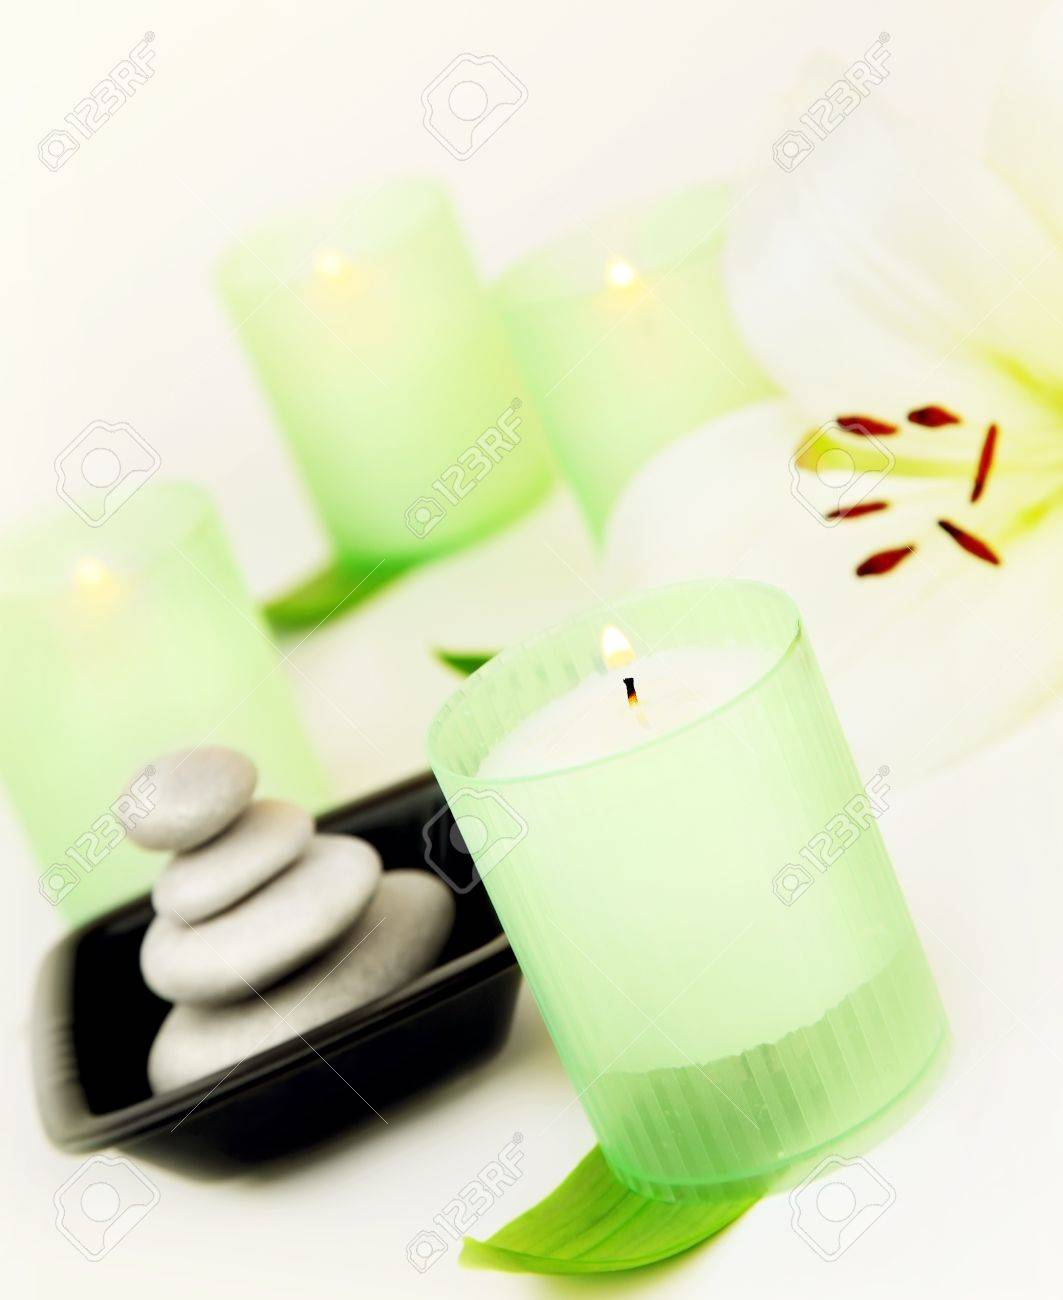 Candles and balanced zen spa stones with lily flower, relaxation vacation concept Stock Photo - 9179225